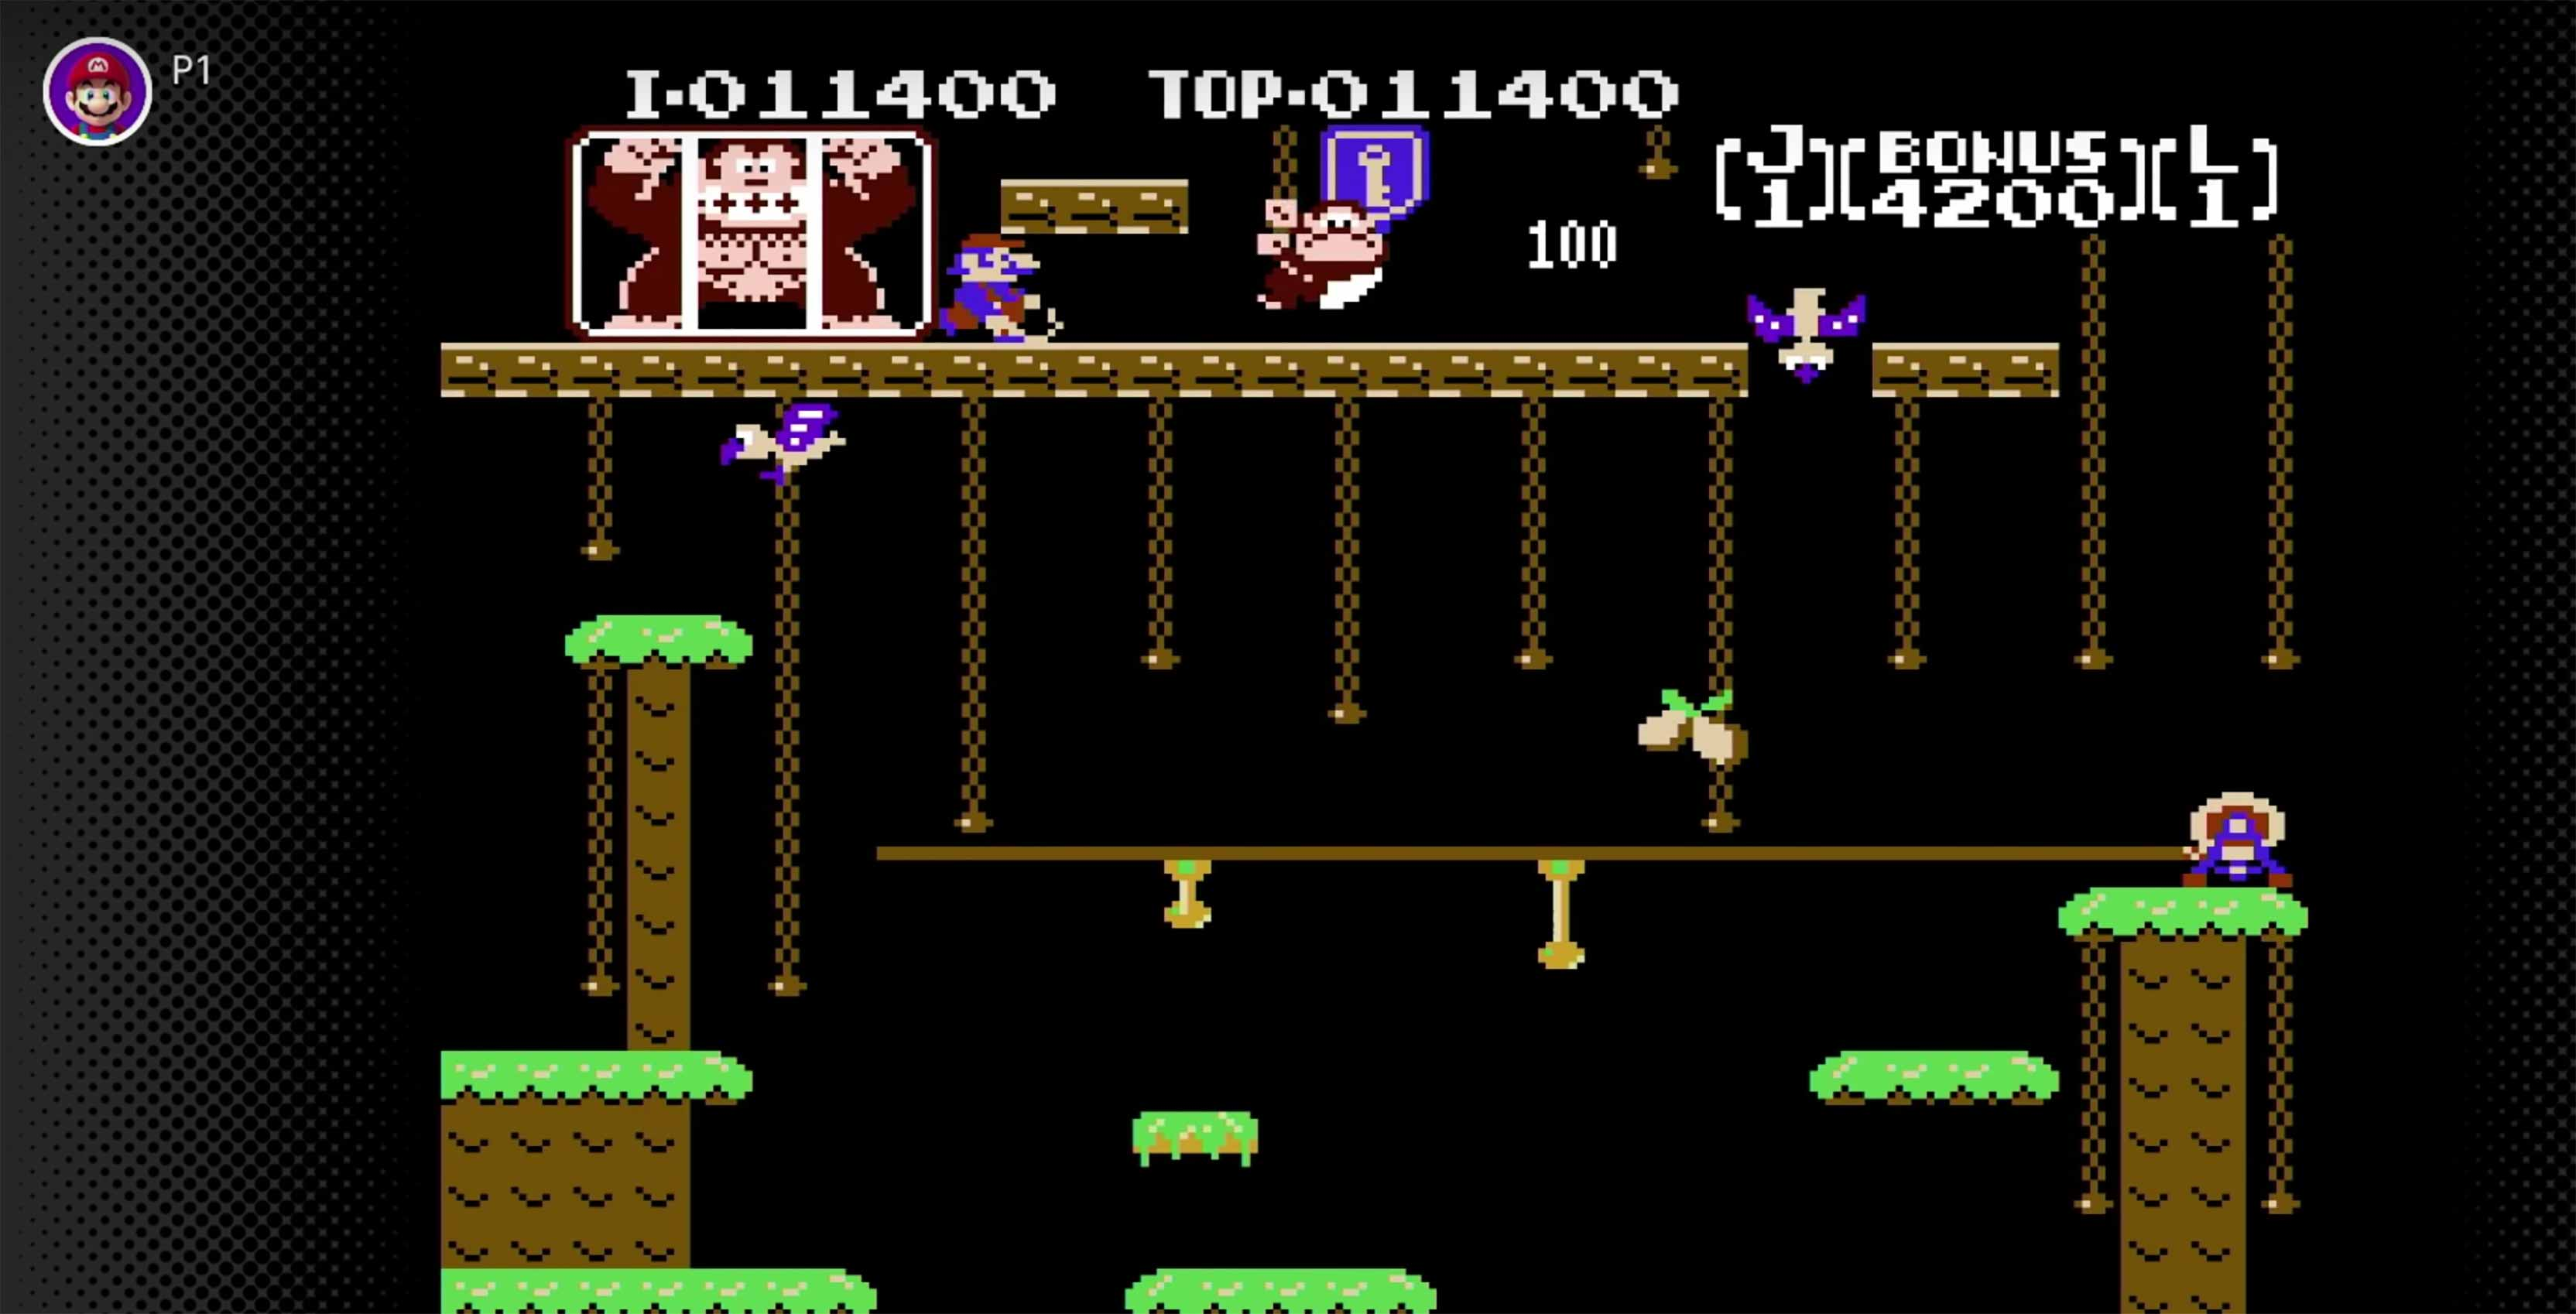 Donkey Kong Jr. gameplay